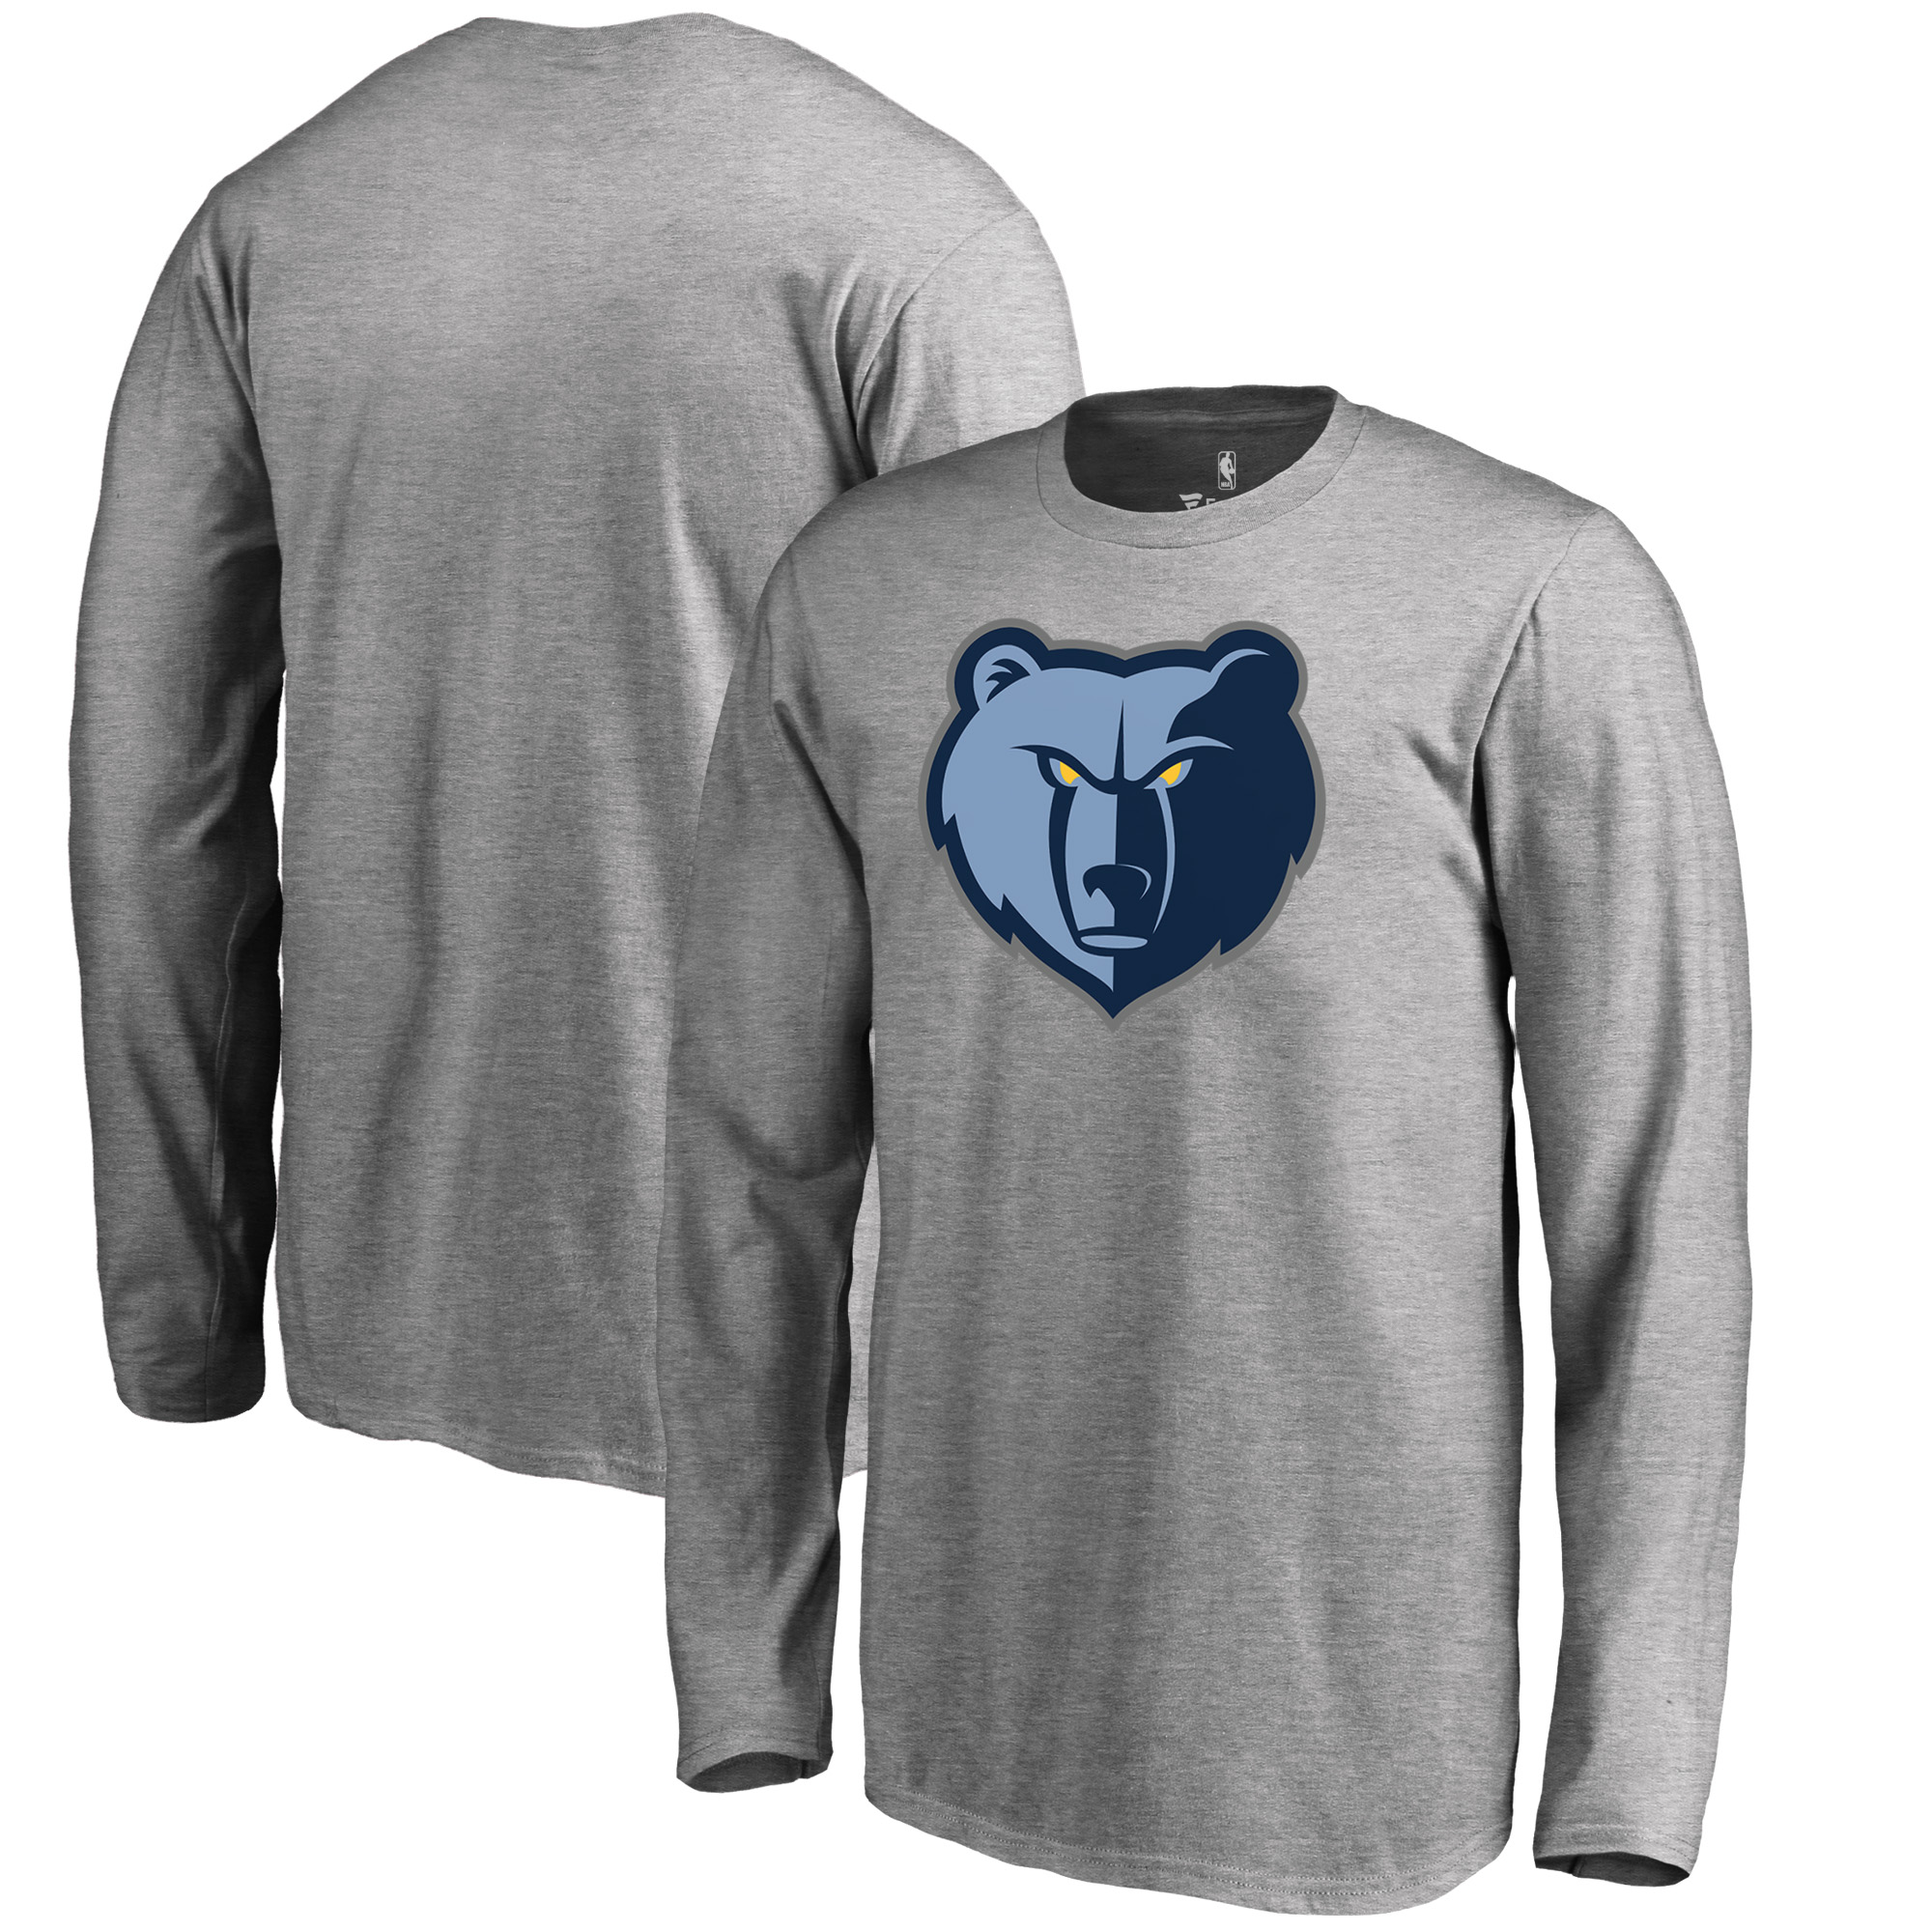 Memphis Grizzlies Fanatics Branded Youth Primary Logo Long Sleeve T-Shirt - Heathered Gray